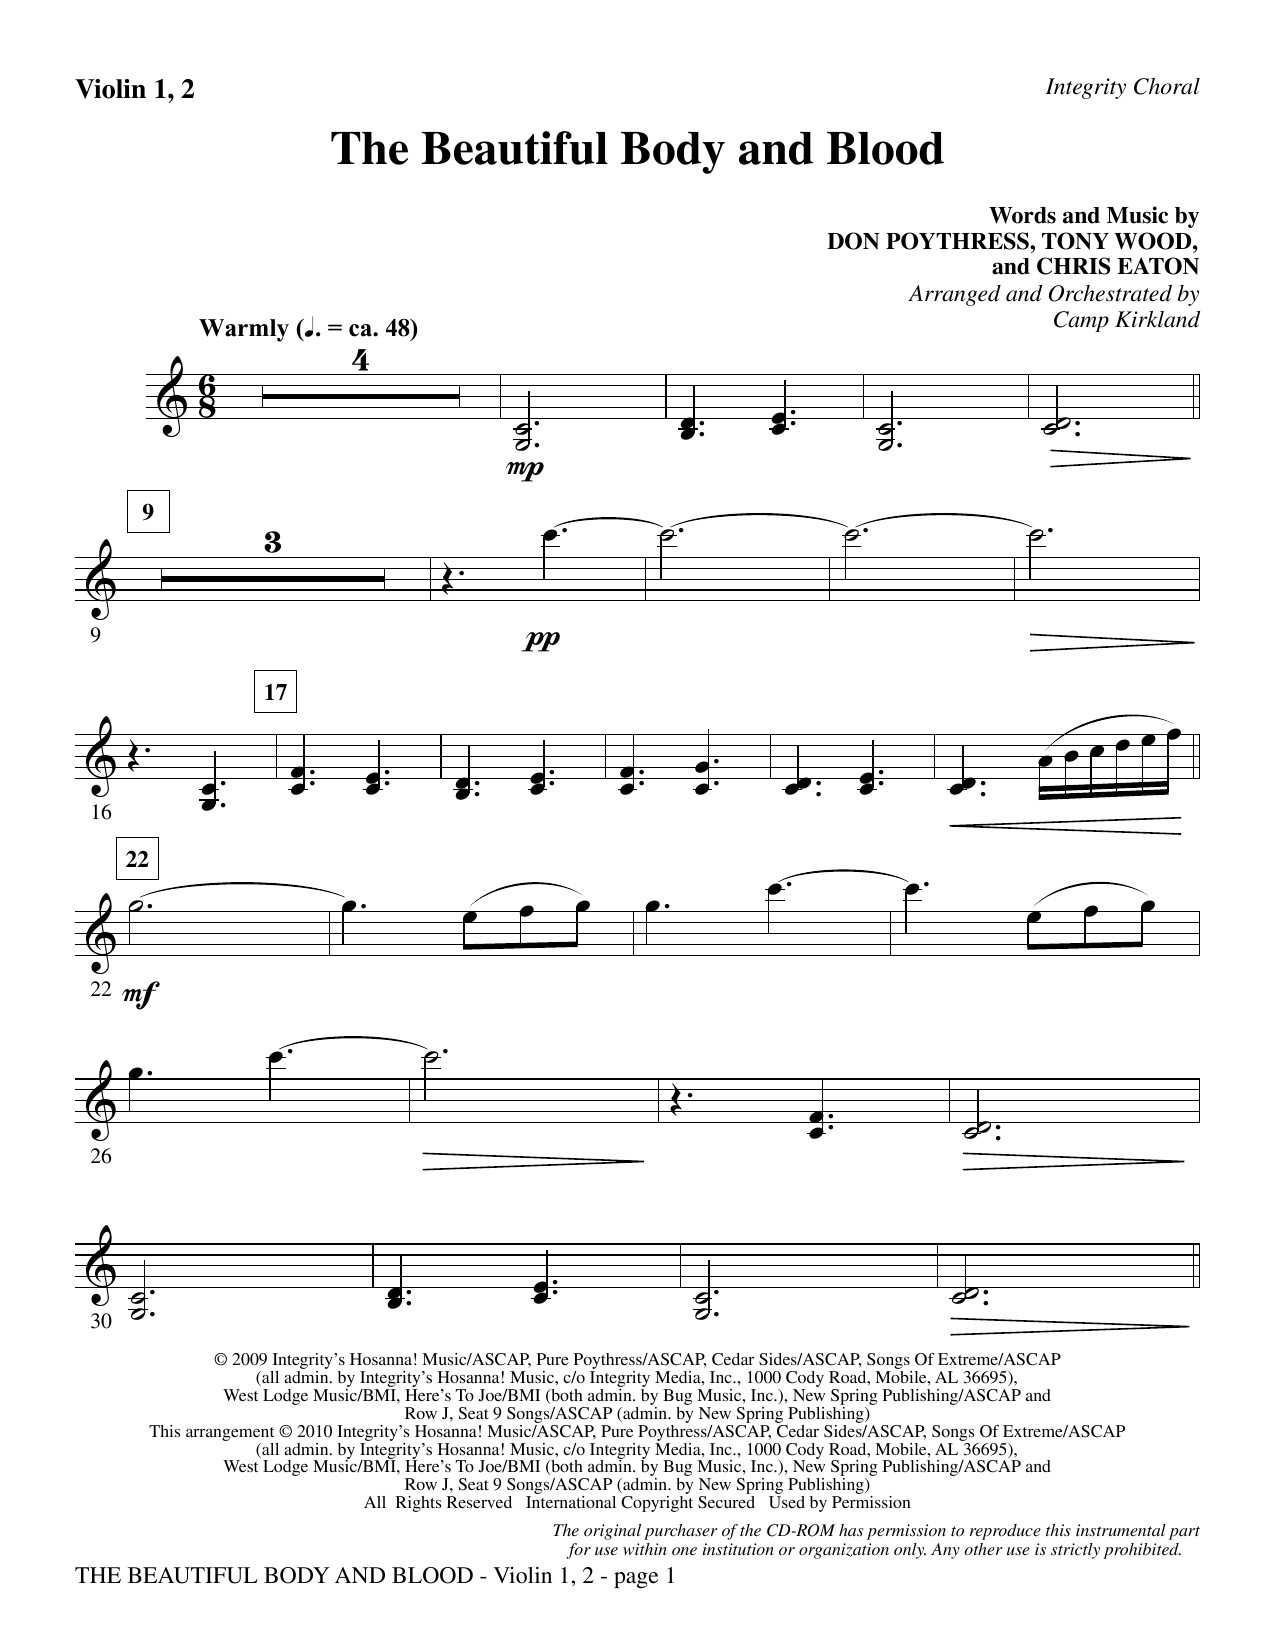 The Beautiful Body And Blood - Violin 1, 2 Sheet Music